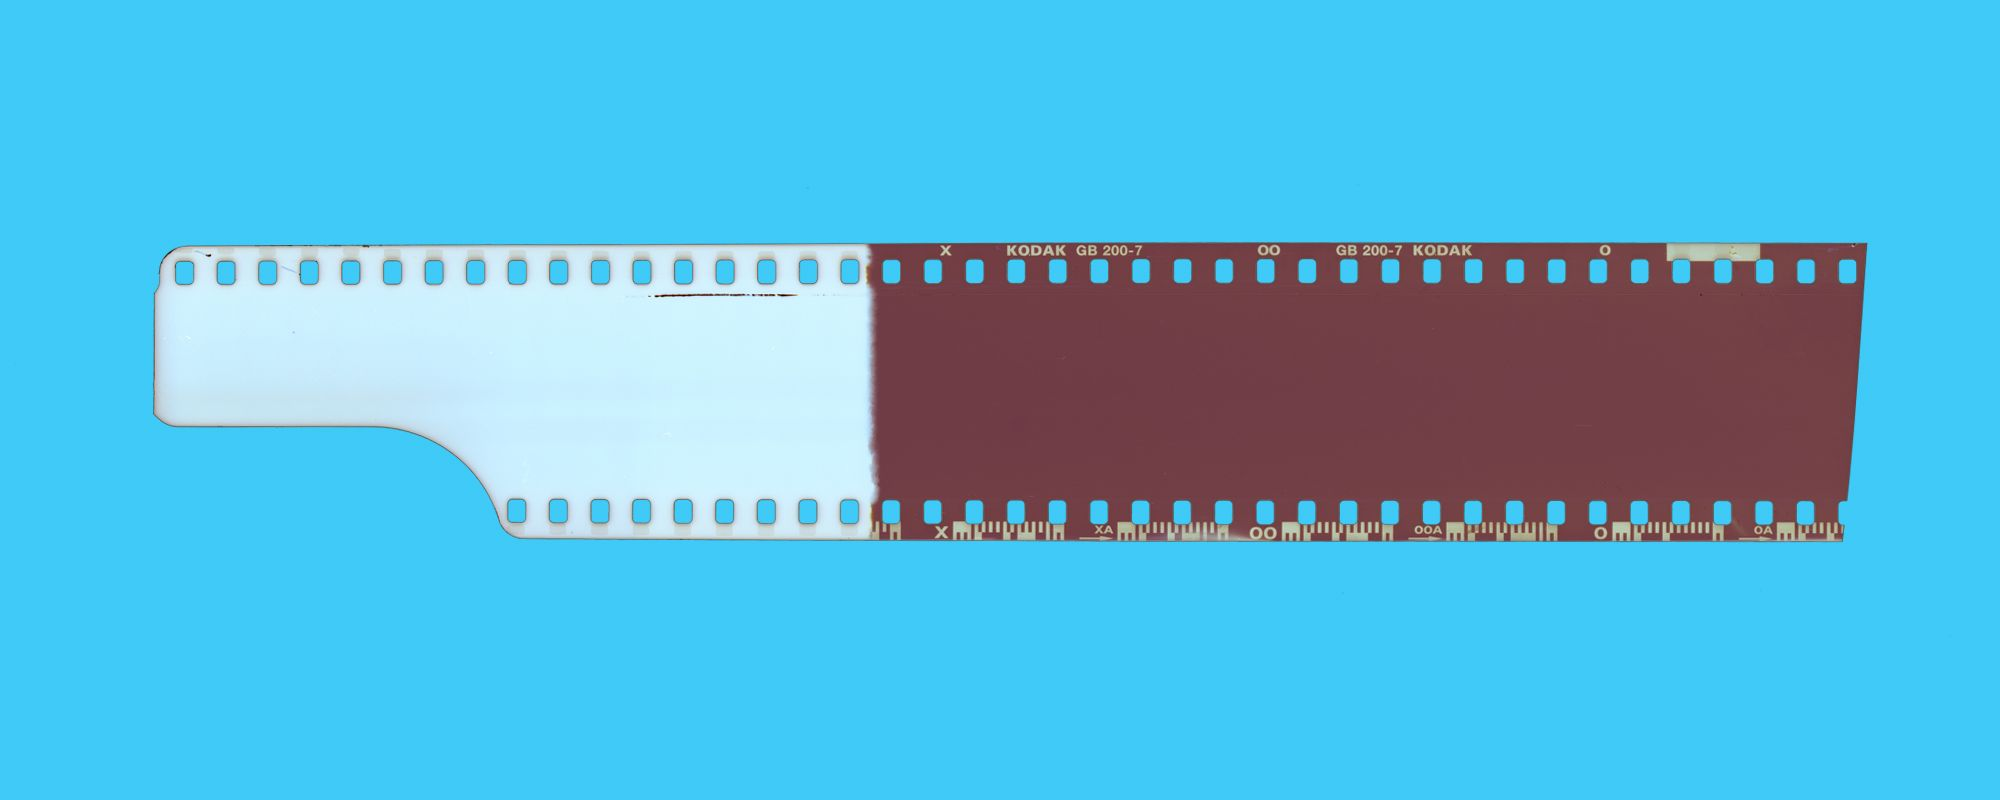 Free Film Strips Png Overlays For Media Projects Free Textures For